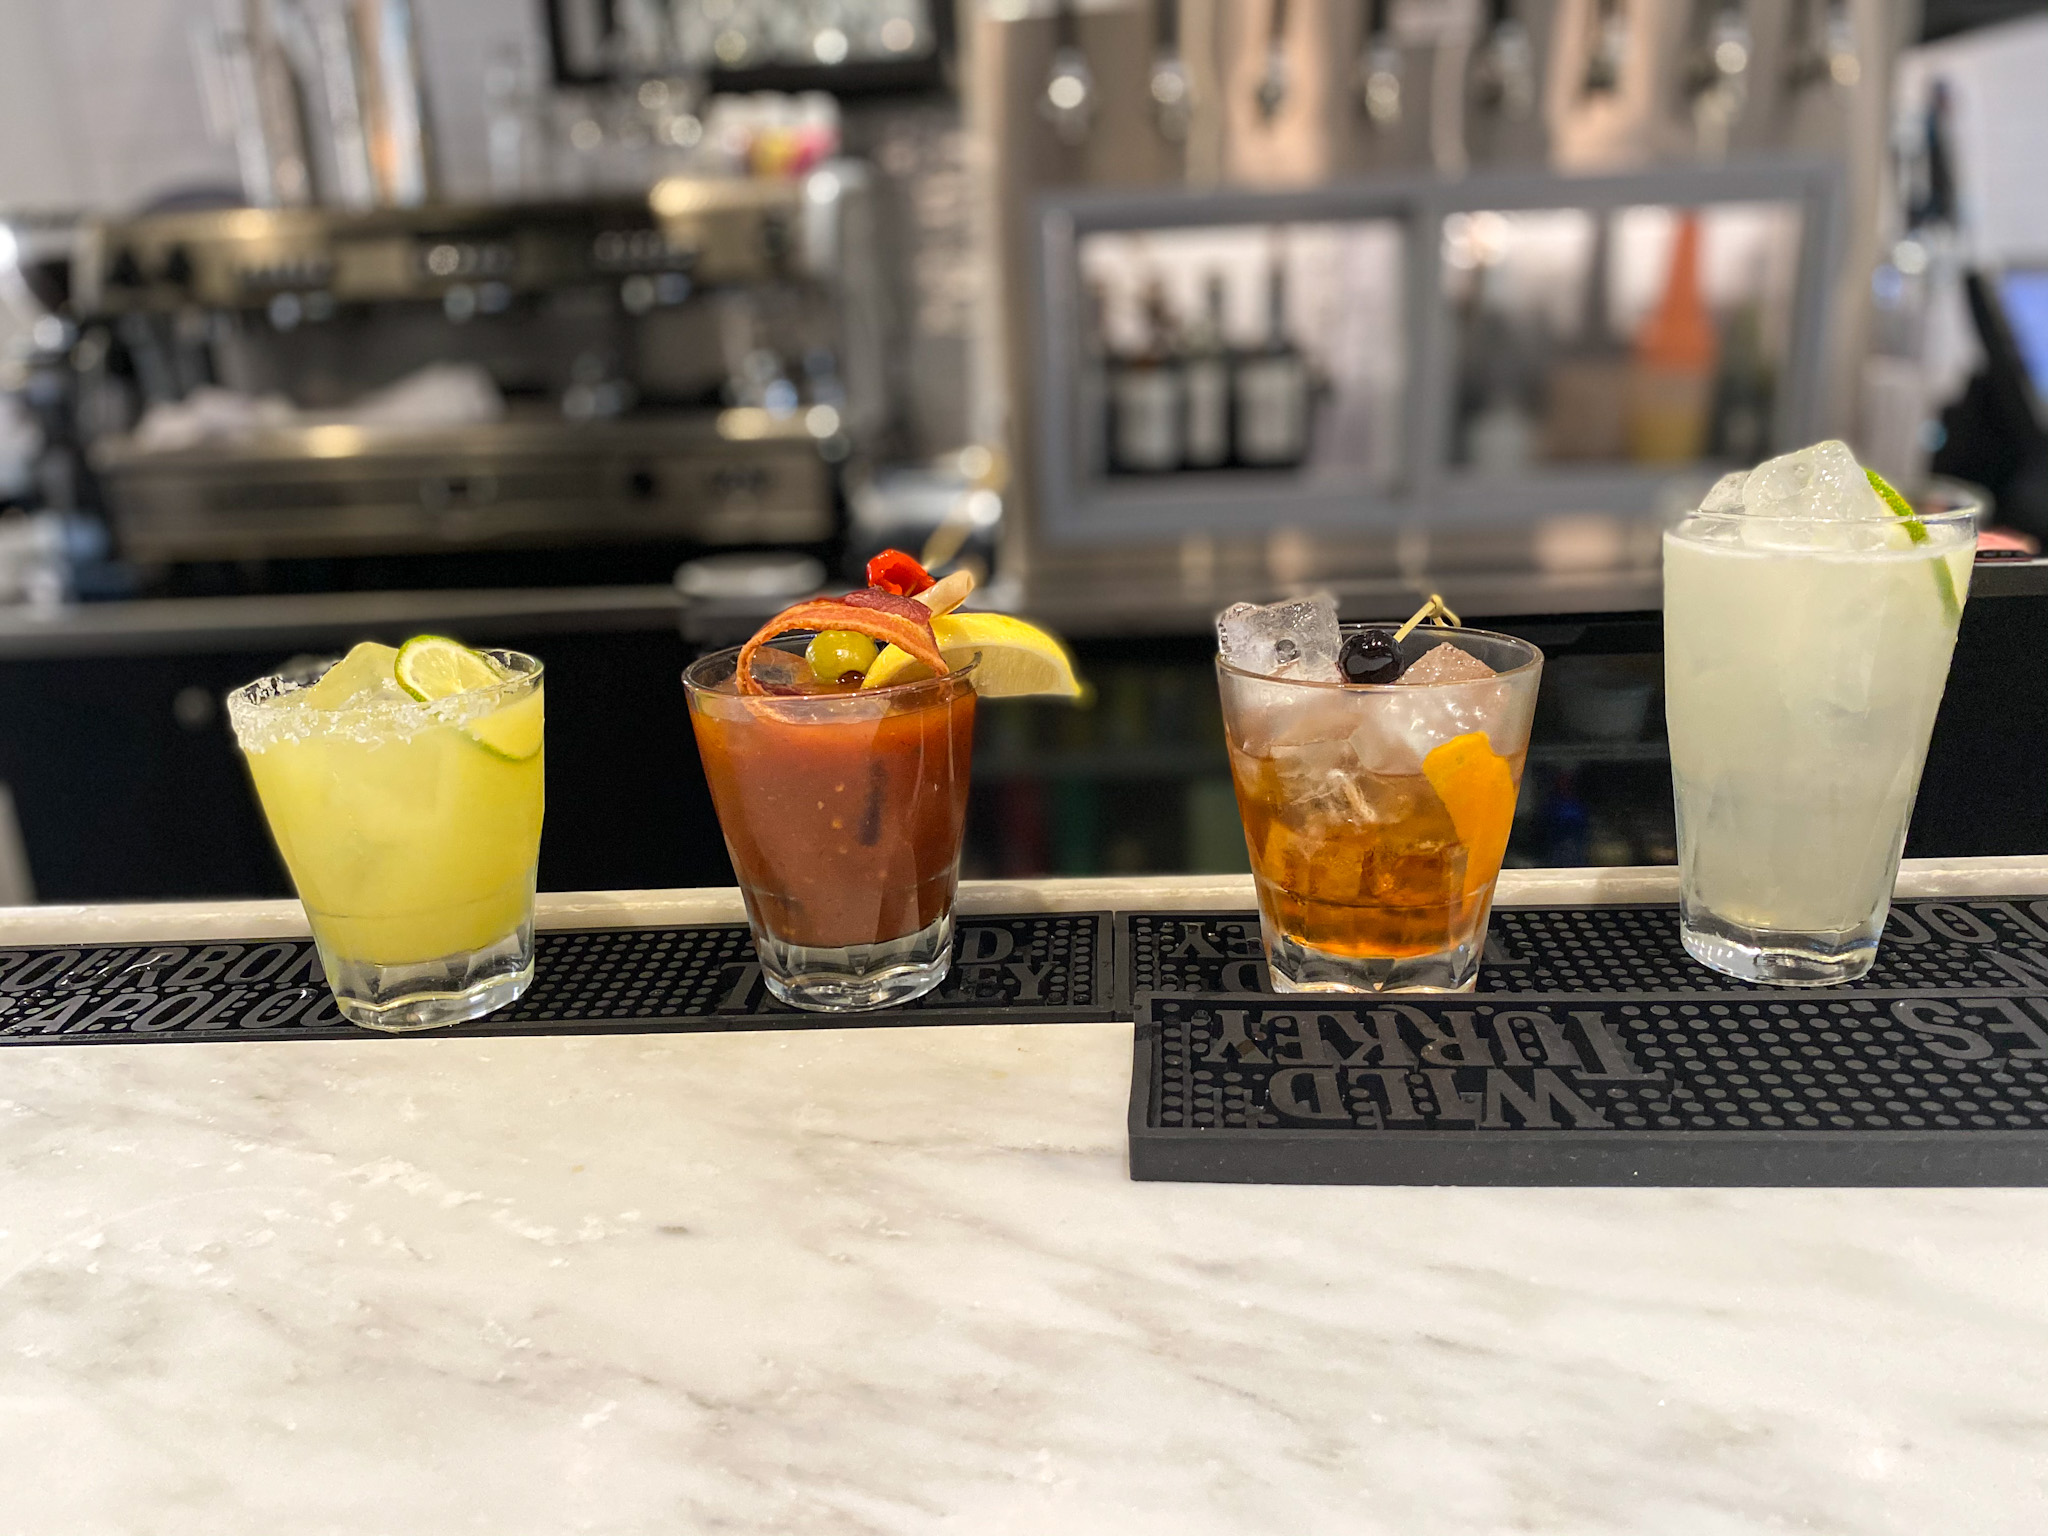 From left, to right: Margarita, Bloody Mary, Old Fashioned and Moscow Mule